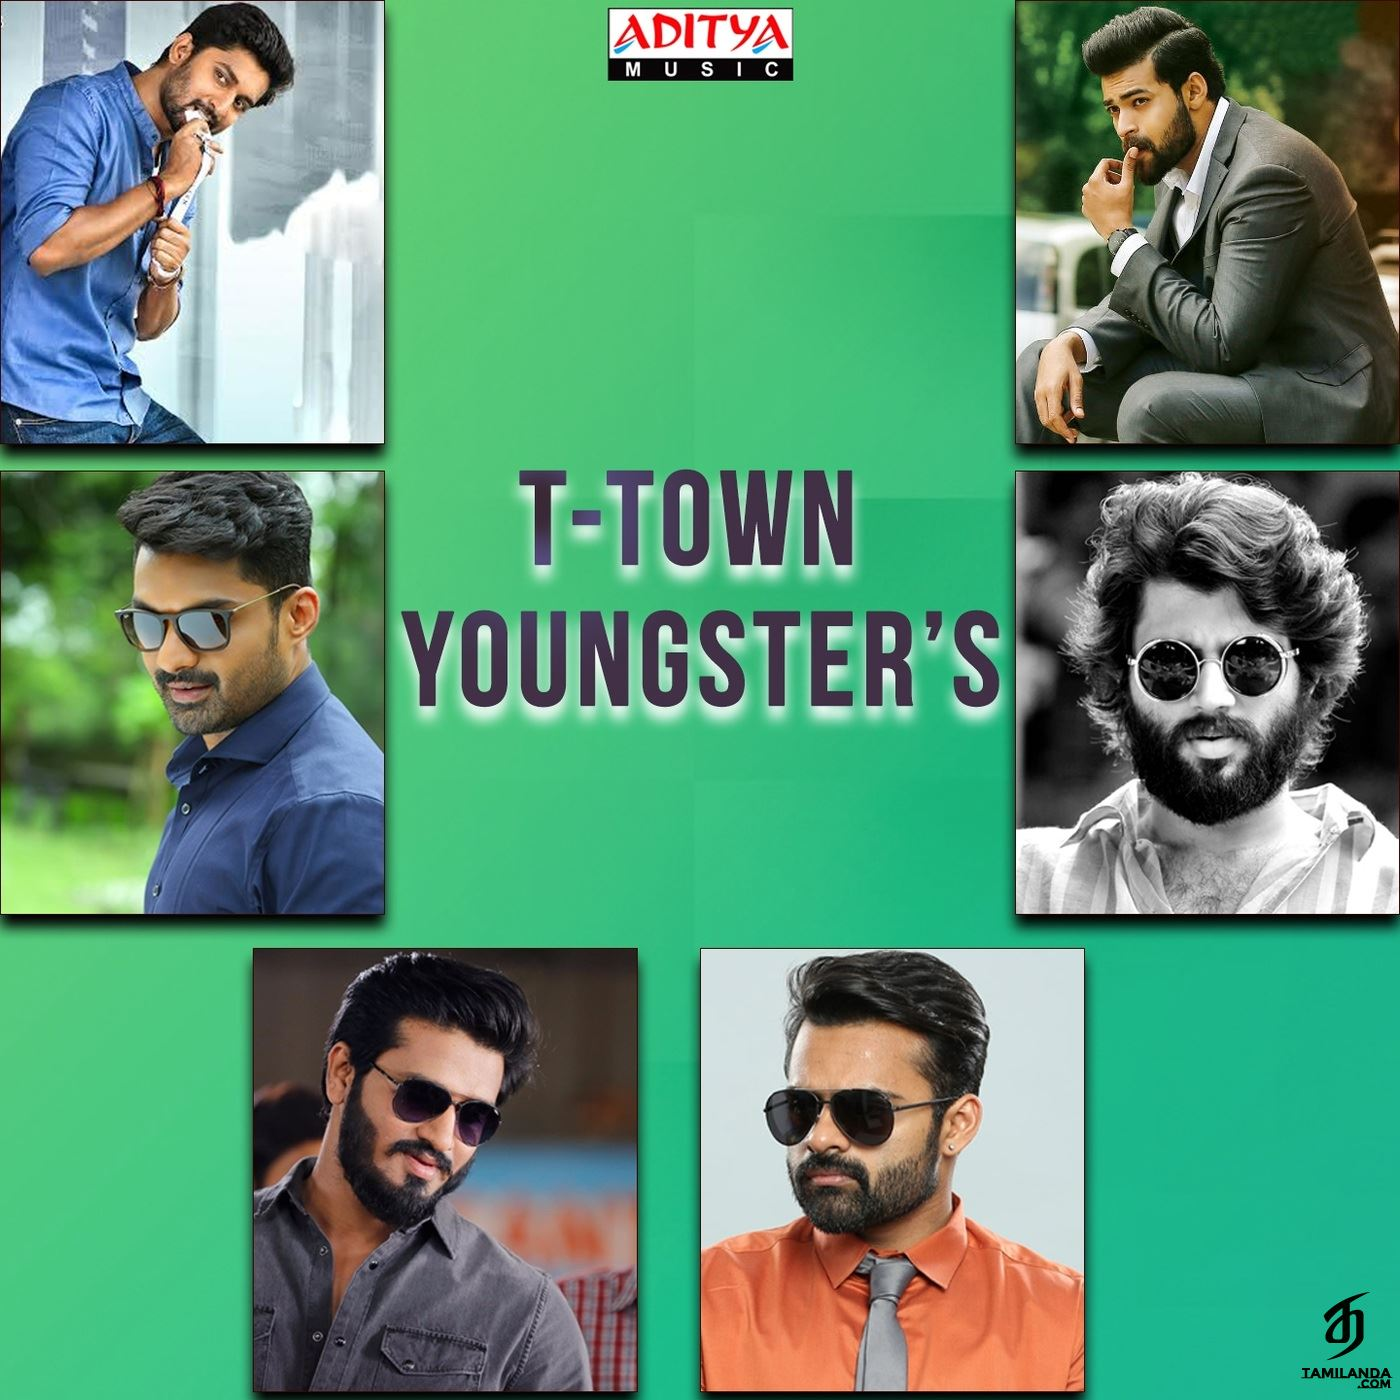 T-Town Youngster's